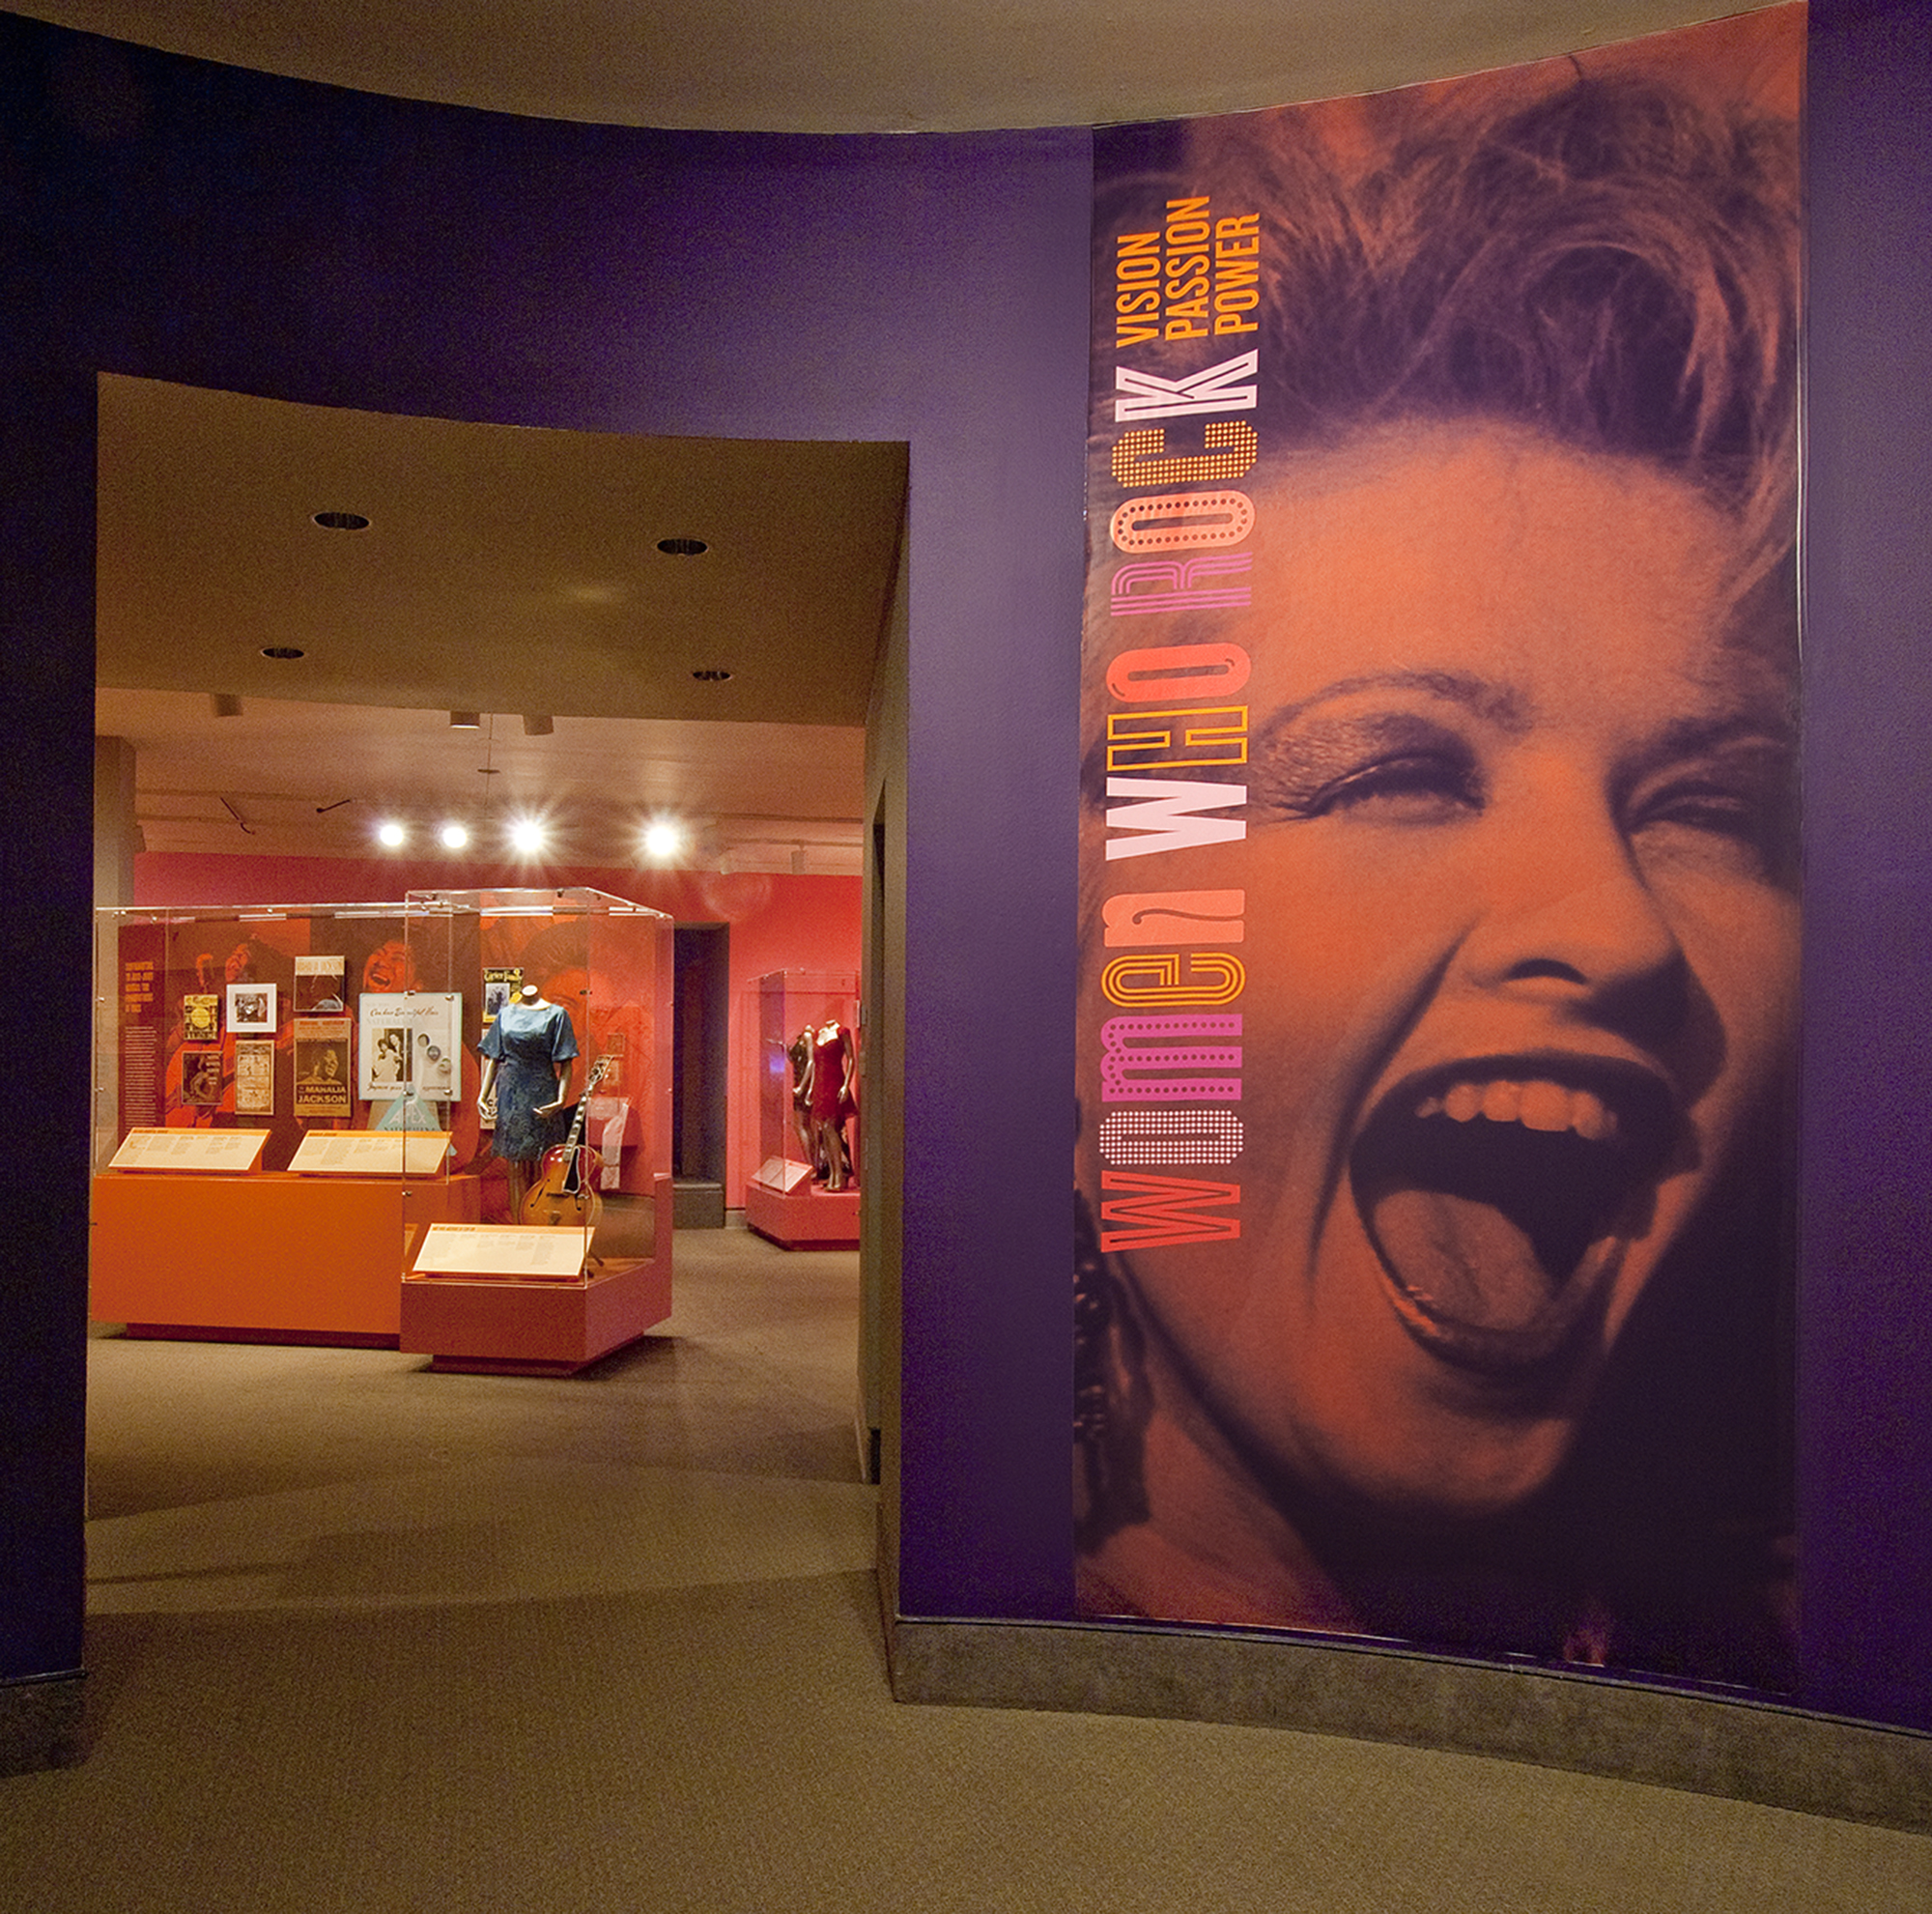 Gallery view showing a purple wall with a photo mural of Debbie Harry singing and the title of the exhibition: Women Who Rock